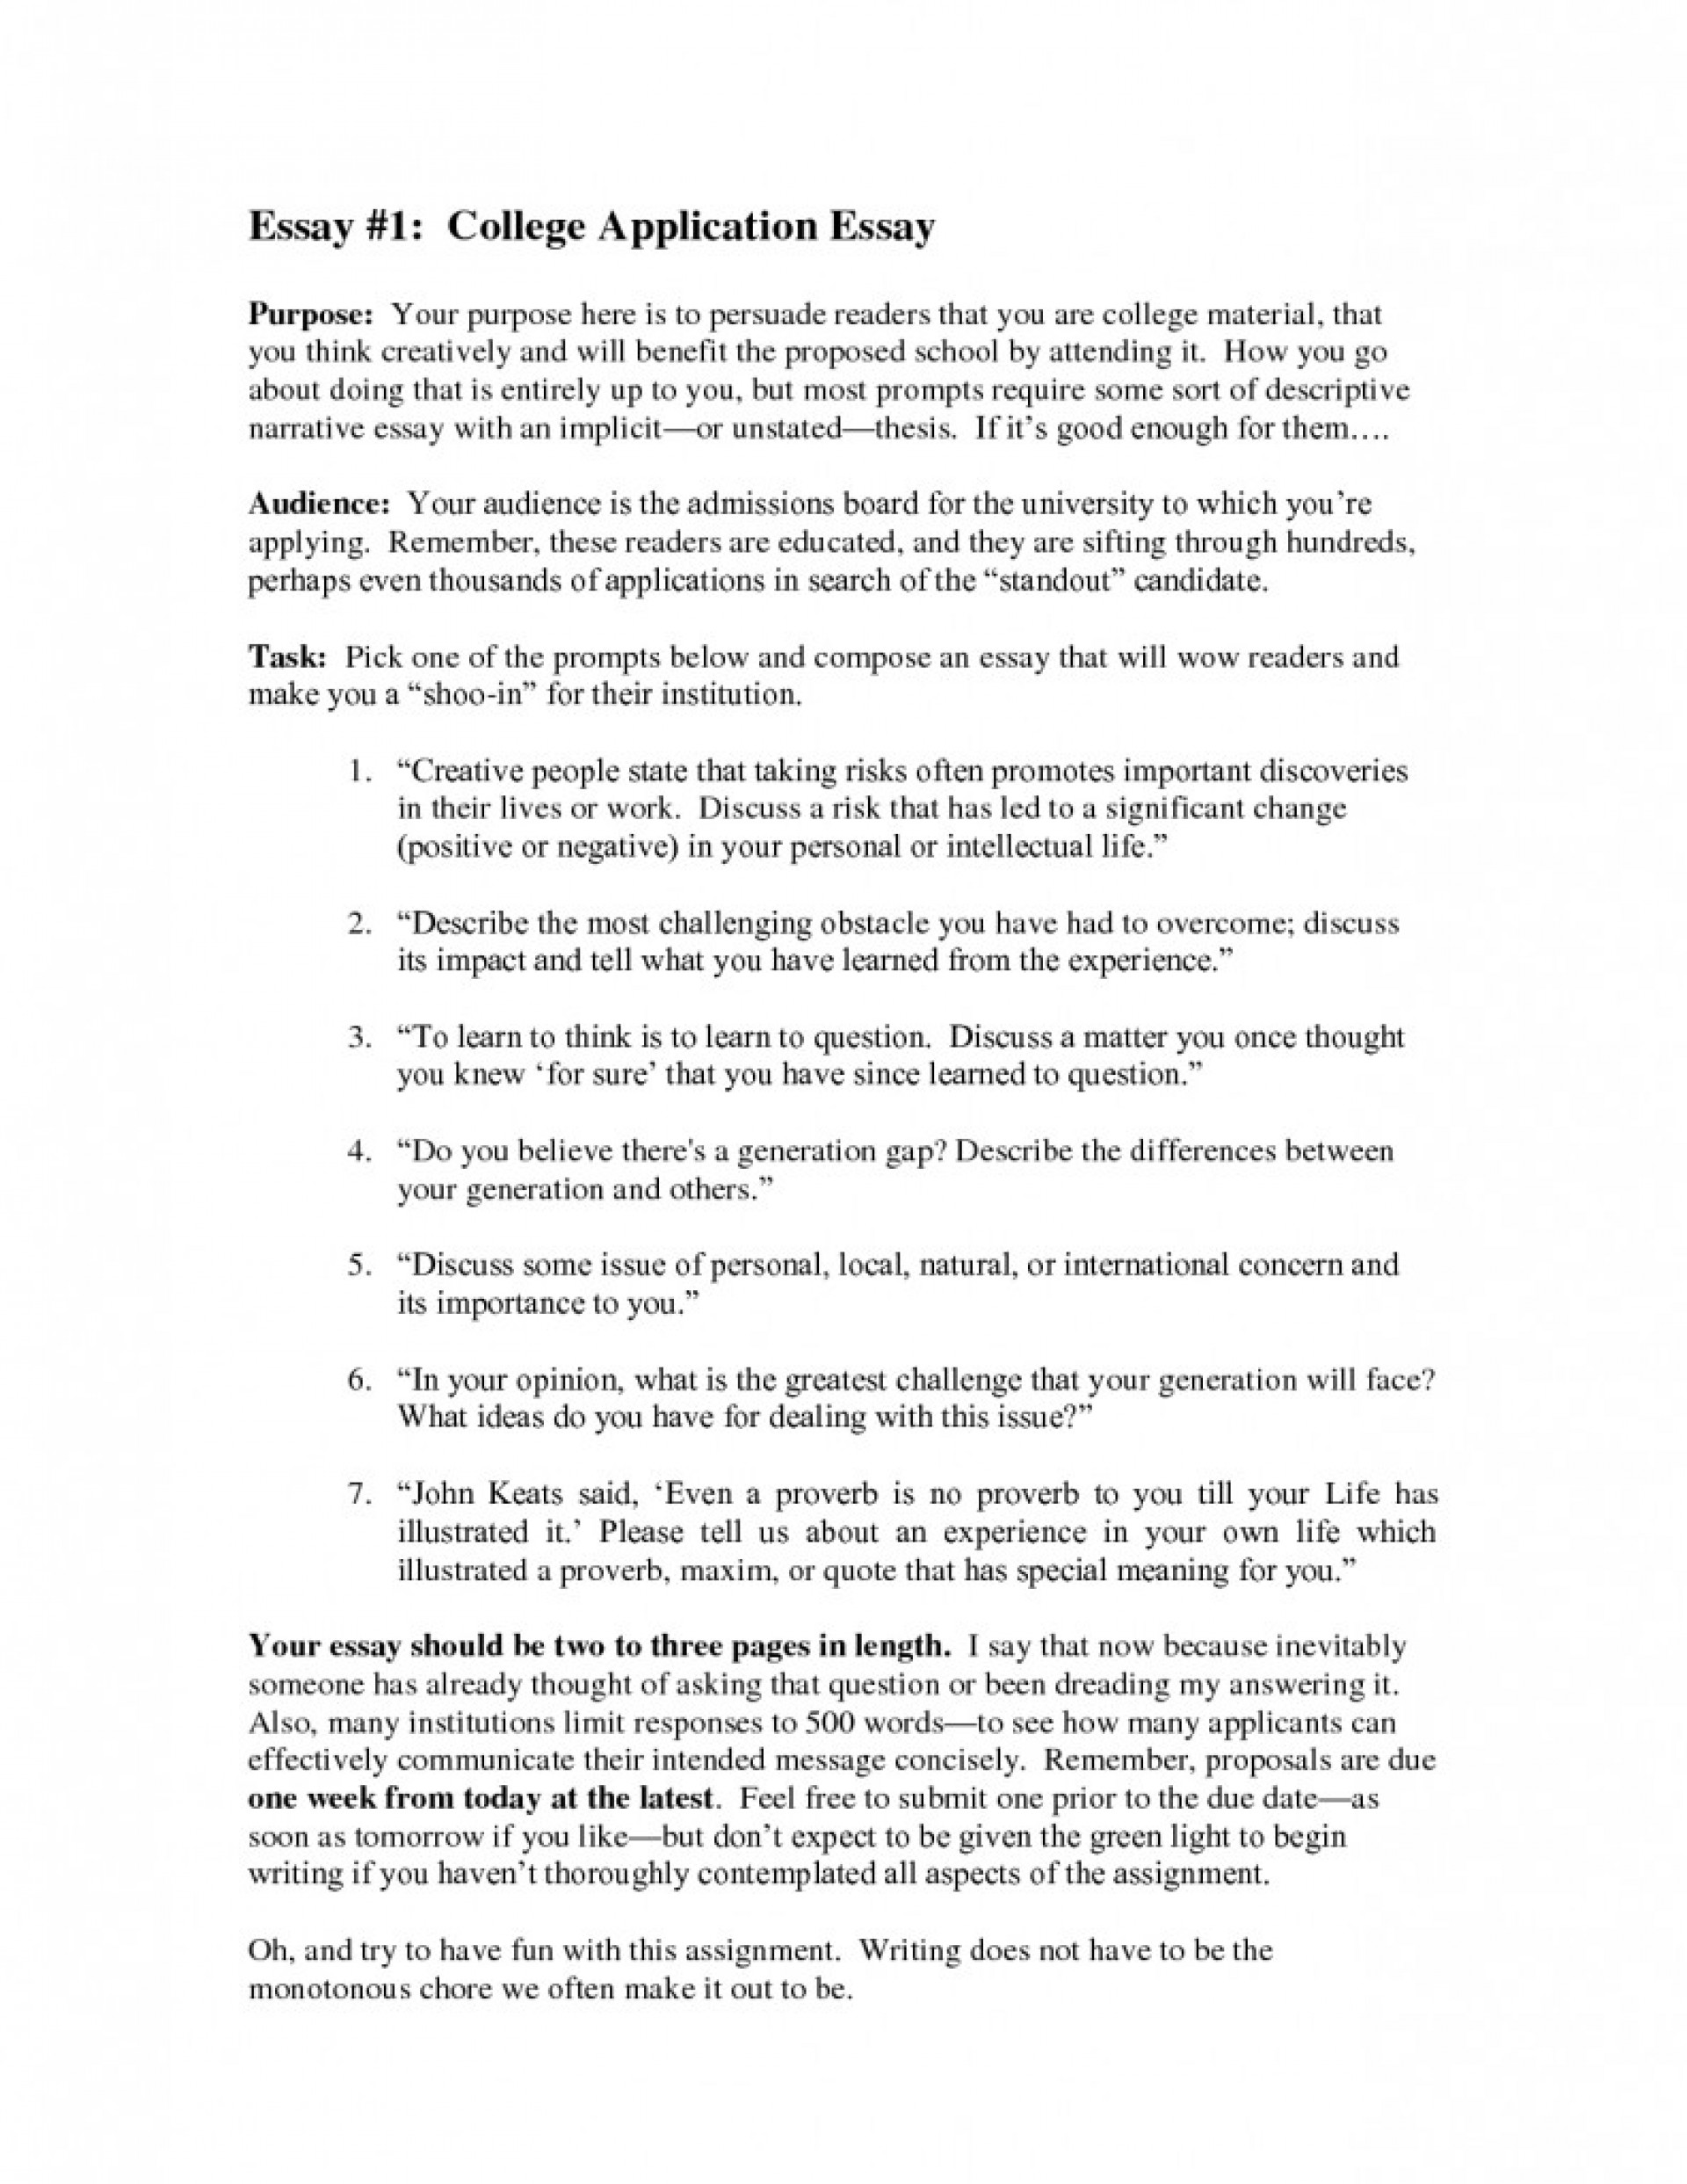 003 College Application Essay 791x1024 Example Personal Challenge Astounding Ideas 1920